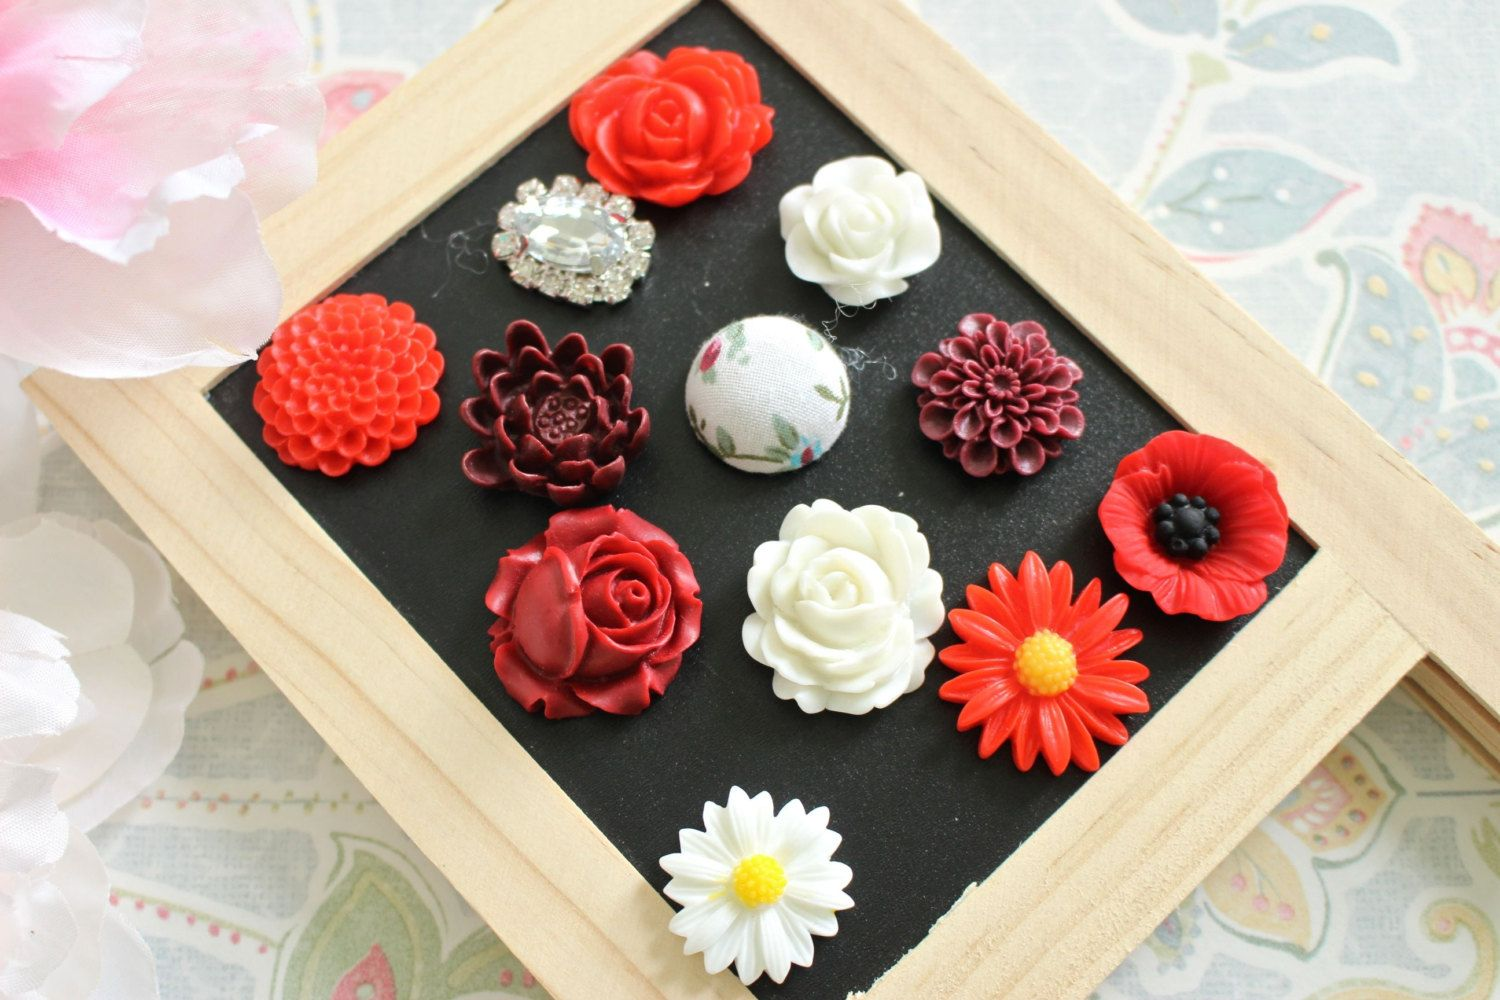 Mixed Red White 12 Fridge Magnets 12 Piece Magnets Flower